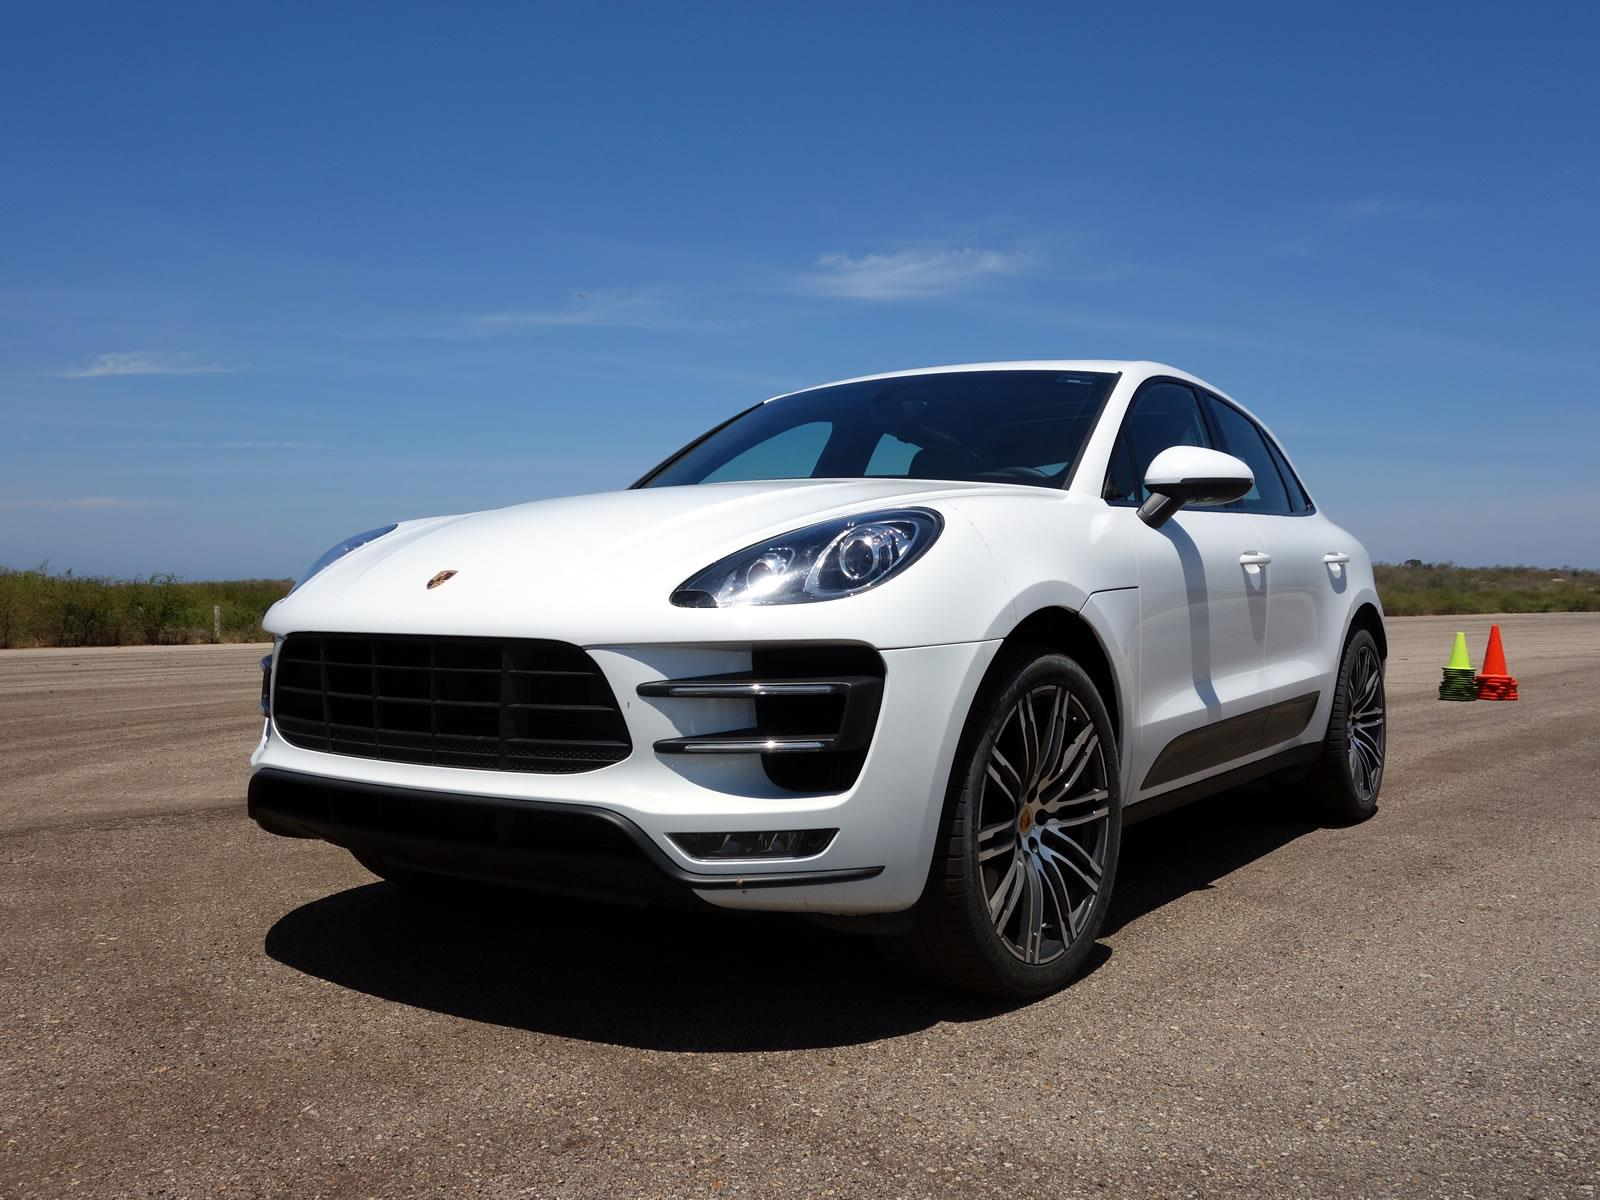 porsche cayenne vs macan with Porsche Macan 2015 A Prueba on Porsche Macan Turbo 2017 Long Term Test Review moreover Awe Tuning Porsche 991 Turbo Performance Exhaust furthermore 2017 Porsche Cayenne Dimensions likewise 2015 likewise Premieres Impressions Porsche Panamera 4 E Hybrid 2018.